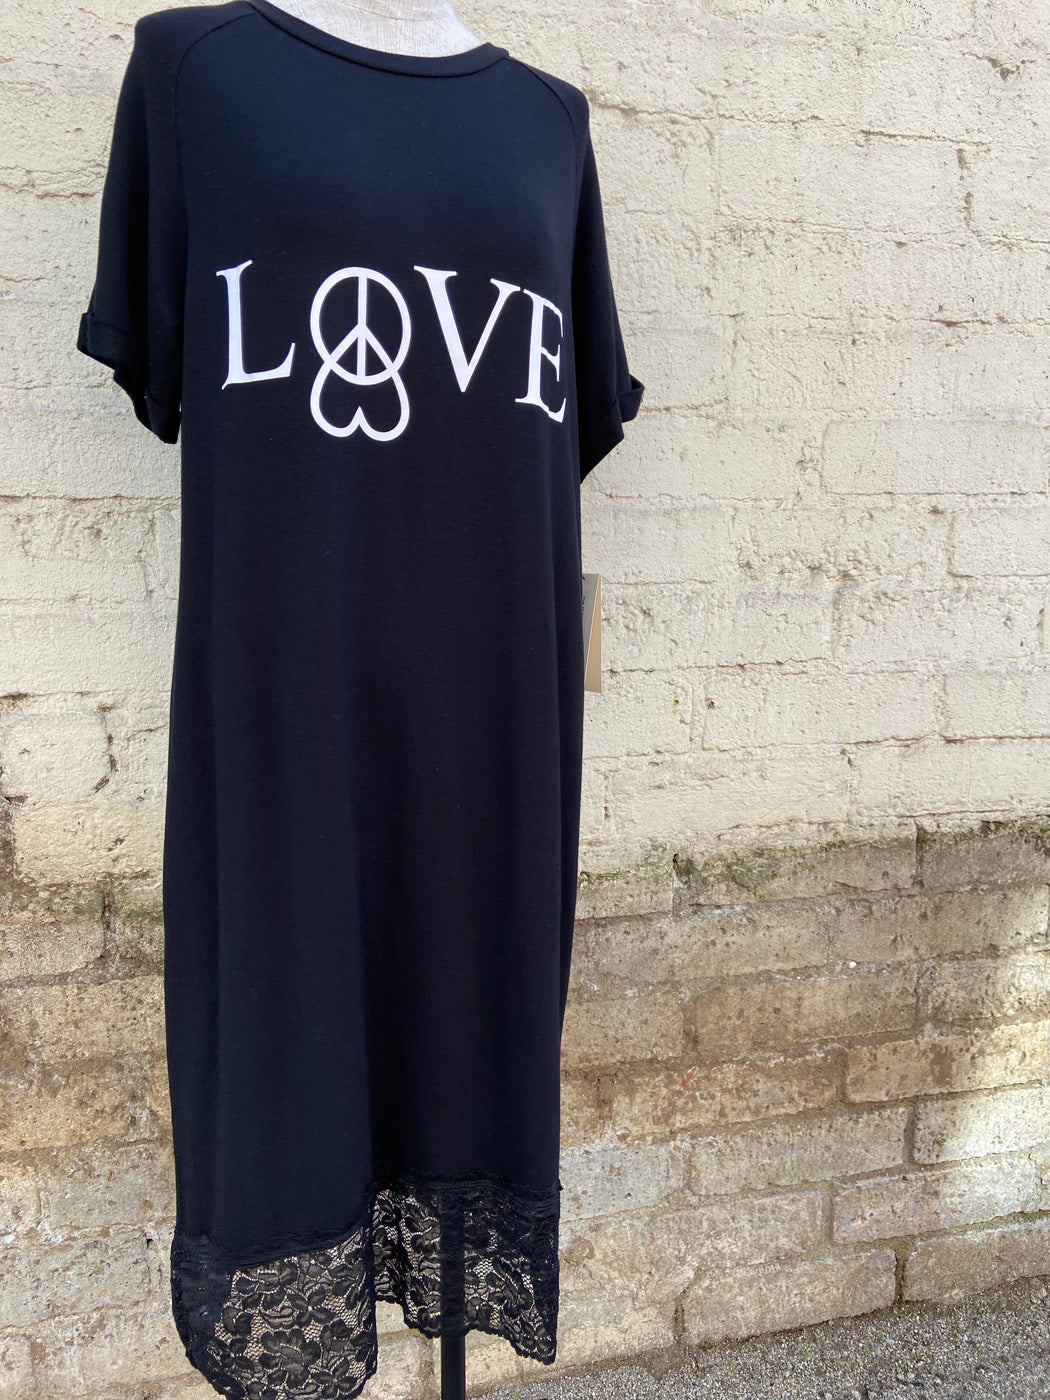 "Extremely comfortable, black, short sleeved nightgown. It has a lovely lace trim at the bottom, and a graphic that reads ""Love"" with a heart and peace sign."